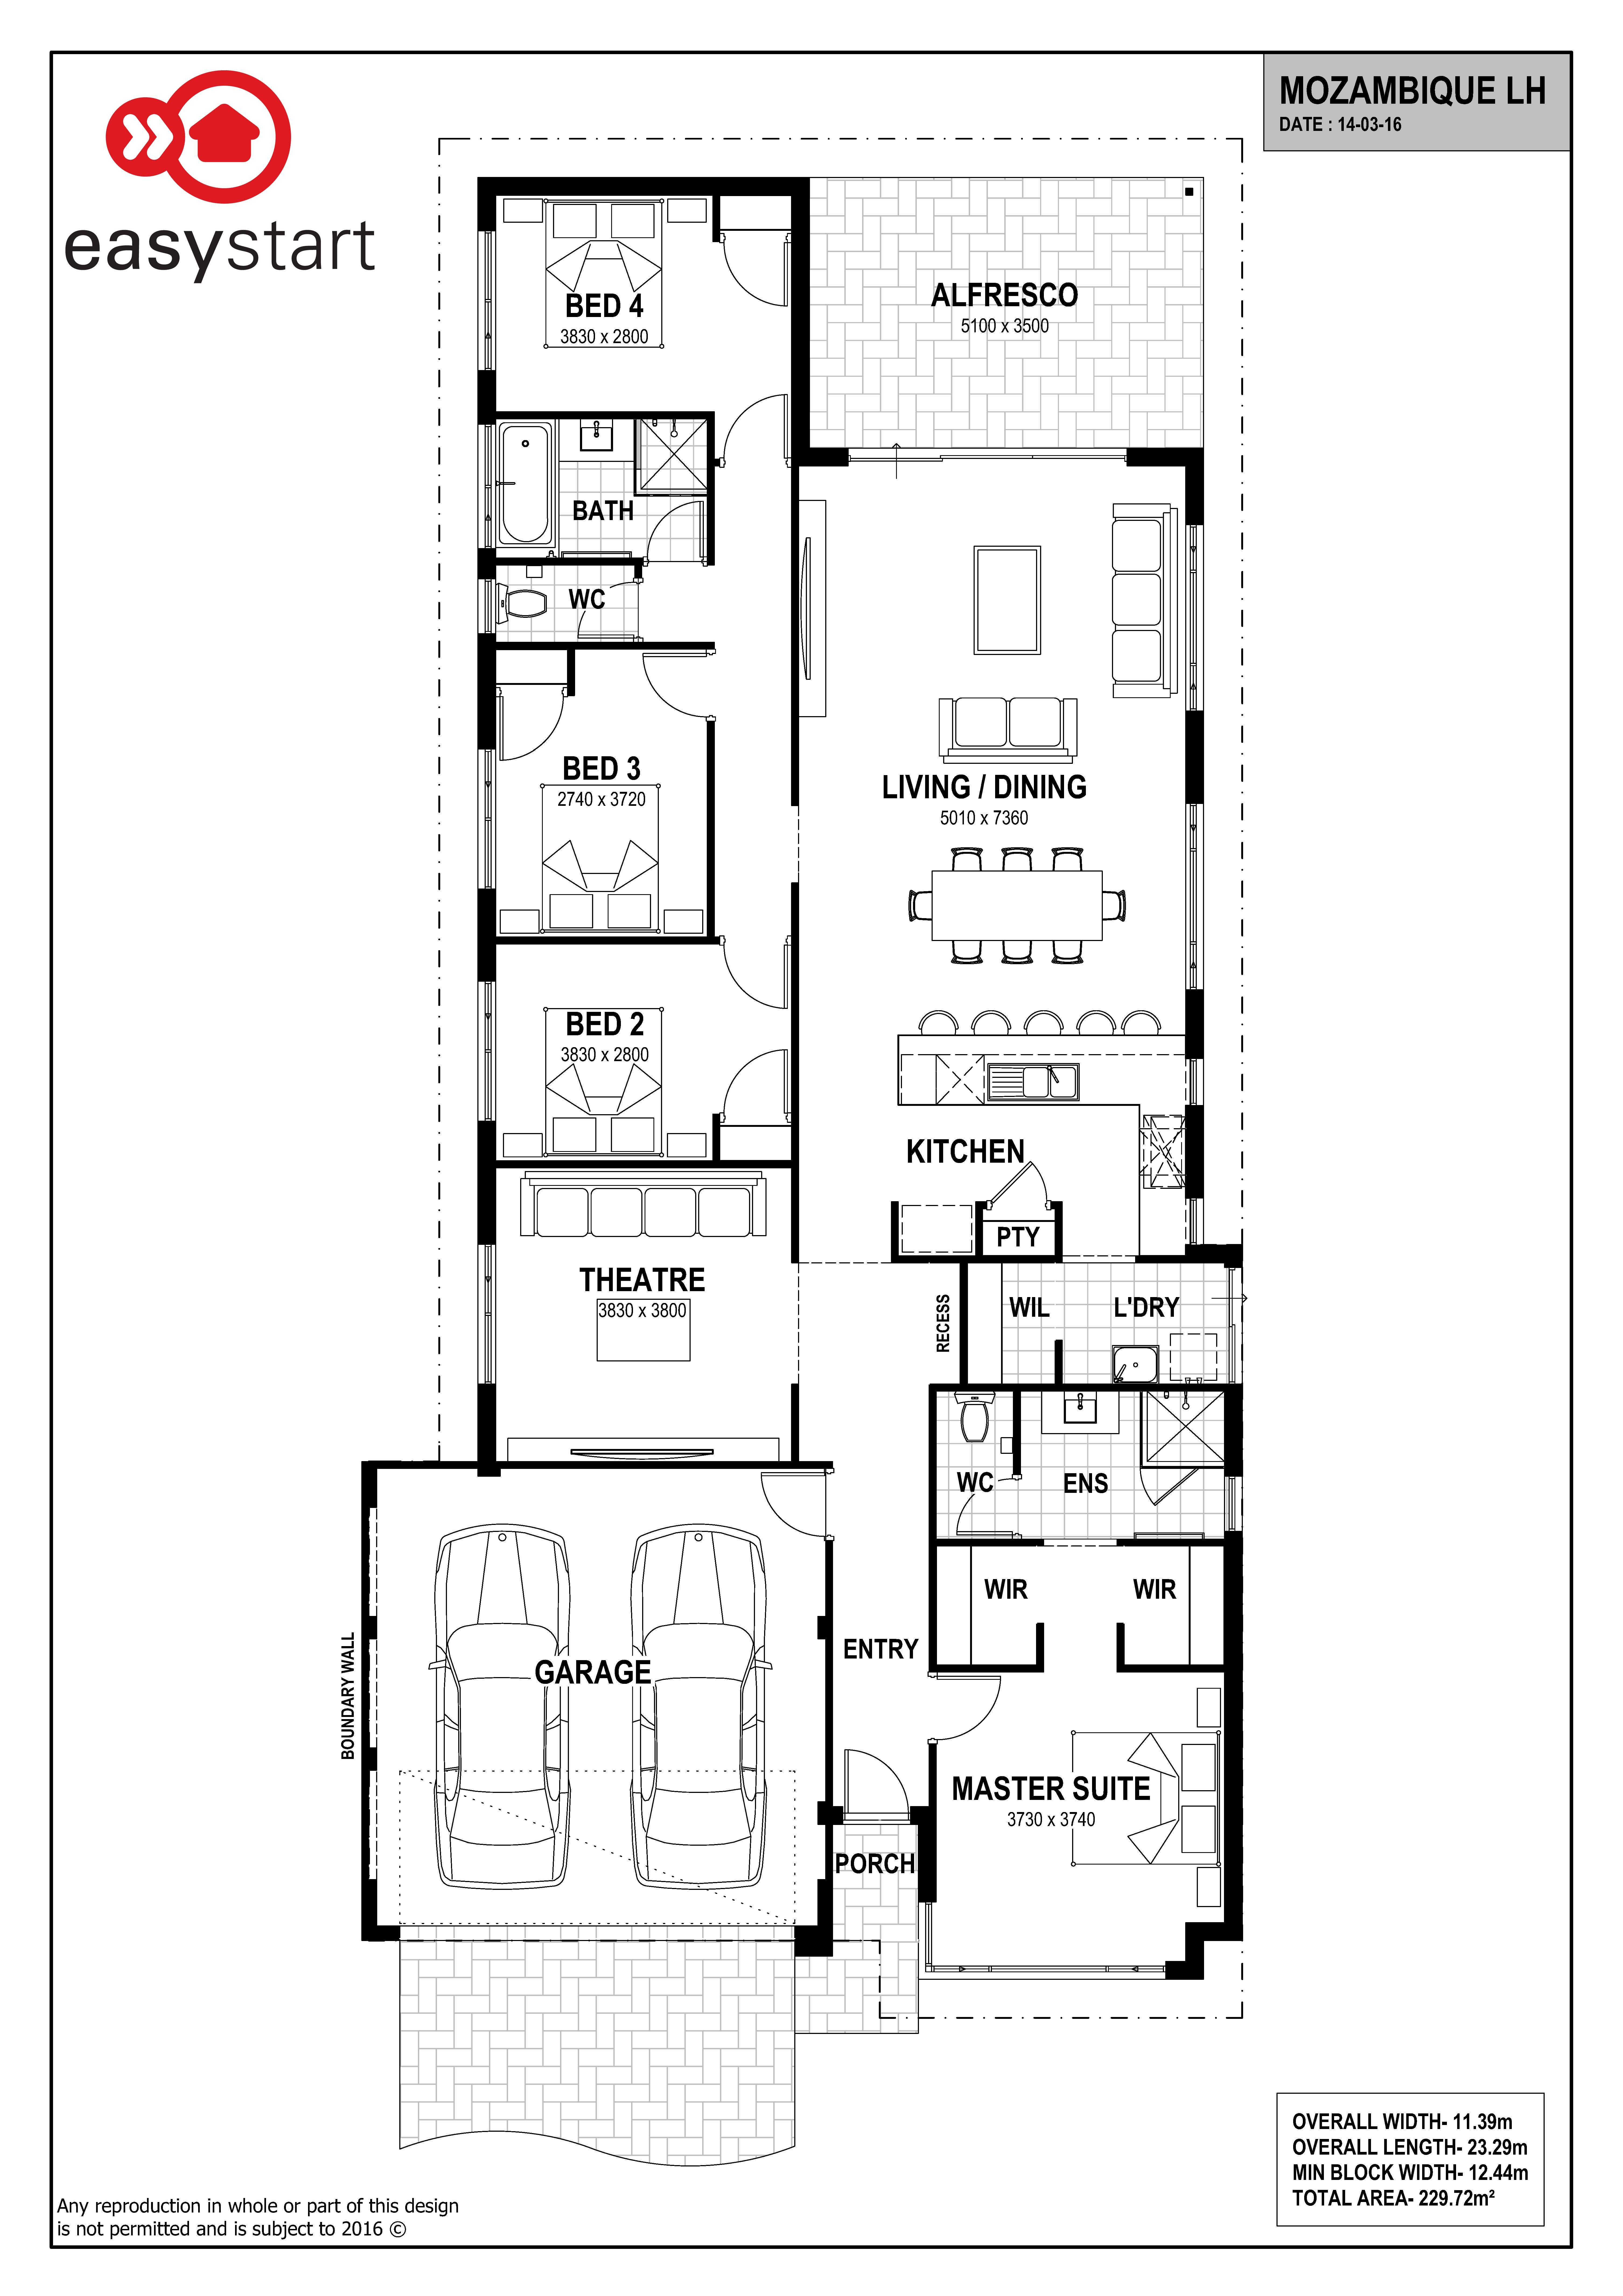 Mozambique | Easystart Home Designs Perth | 2017 House Plans ...